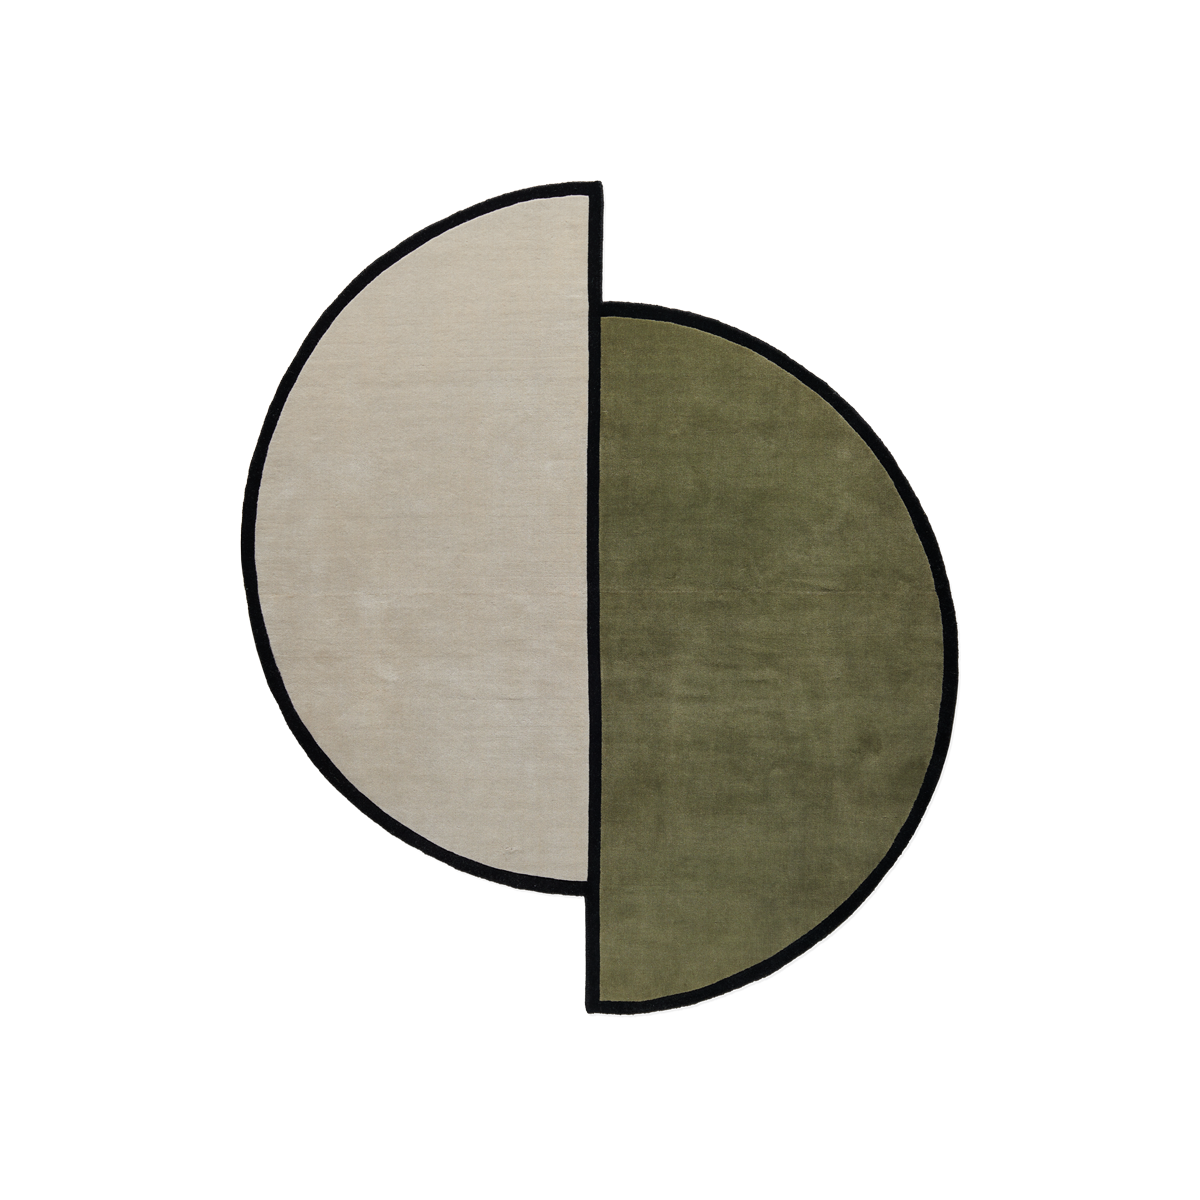 Product image of the plush rug AML 03. The rug is two half circles connecting, one is green and one is cream colored. They both have a black thick border all around.